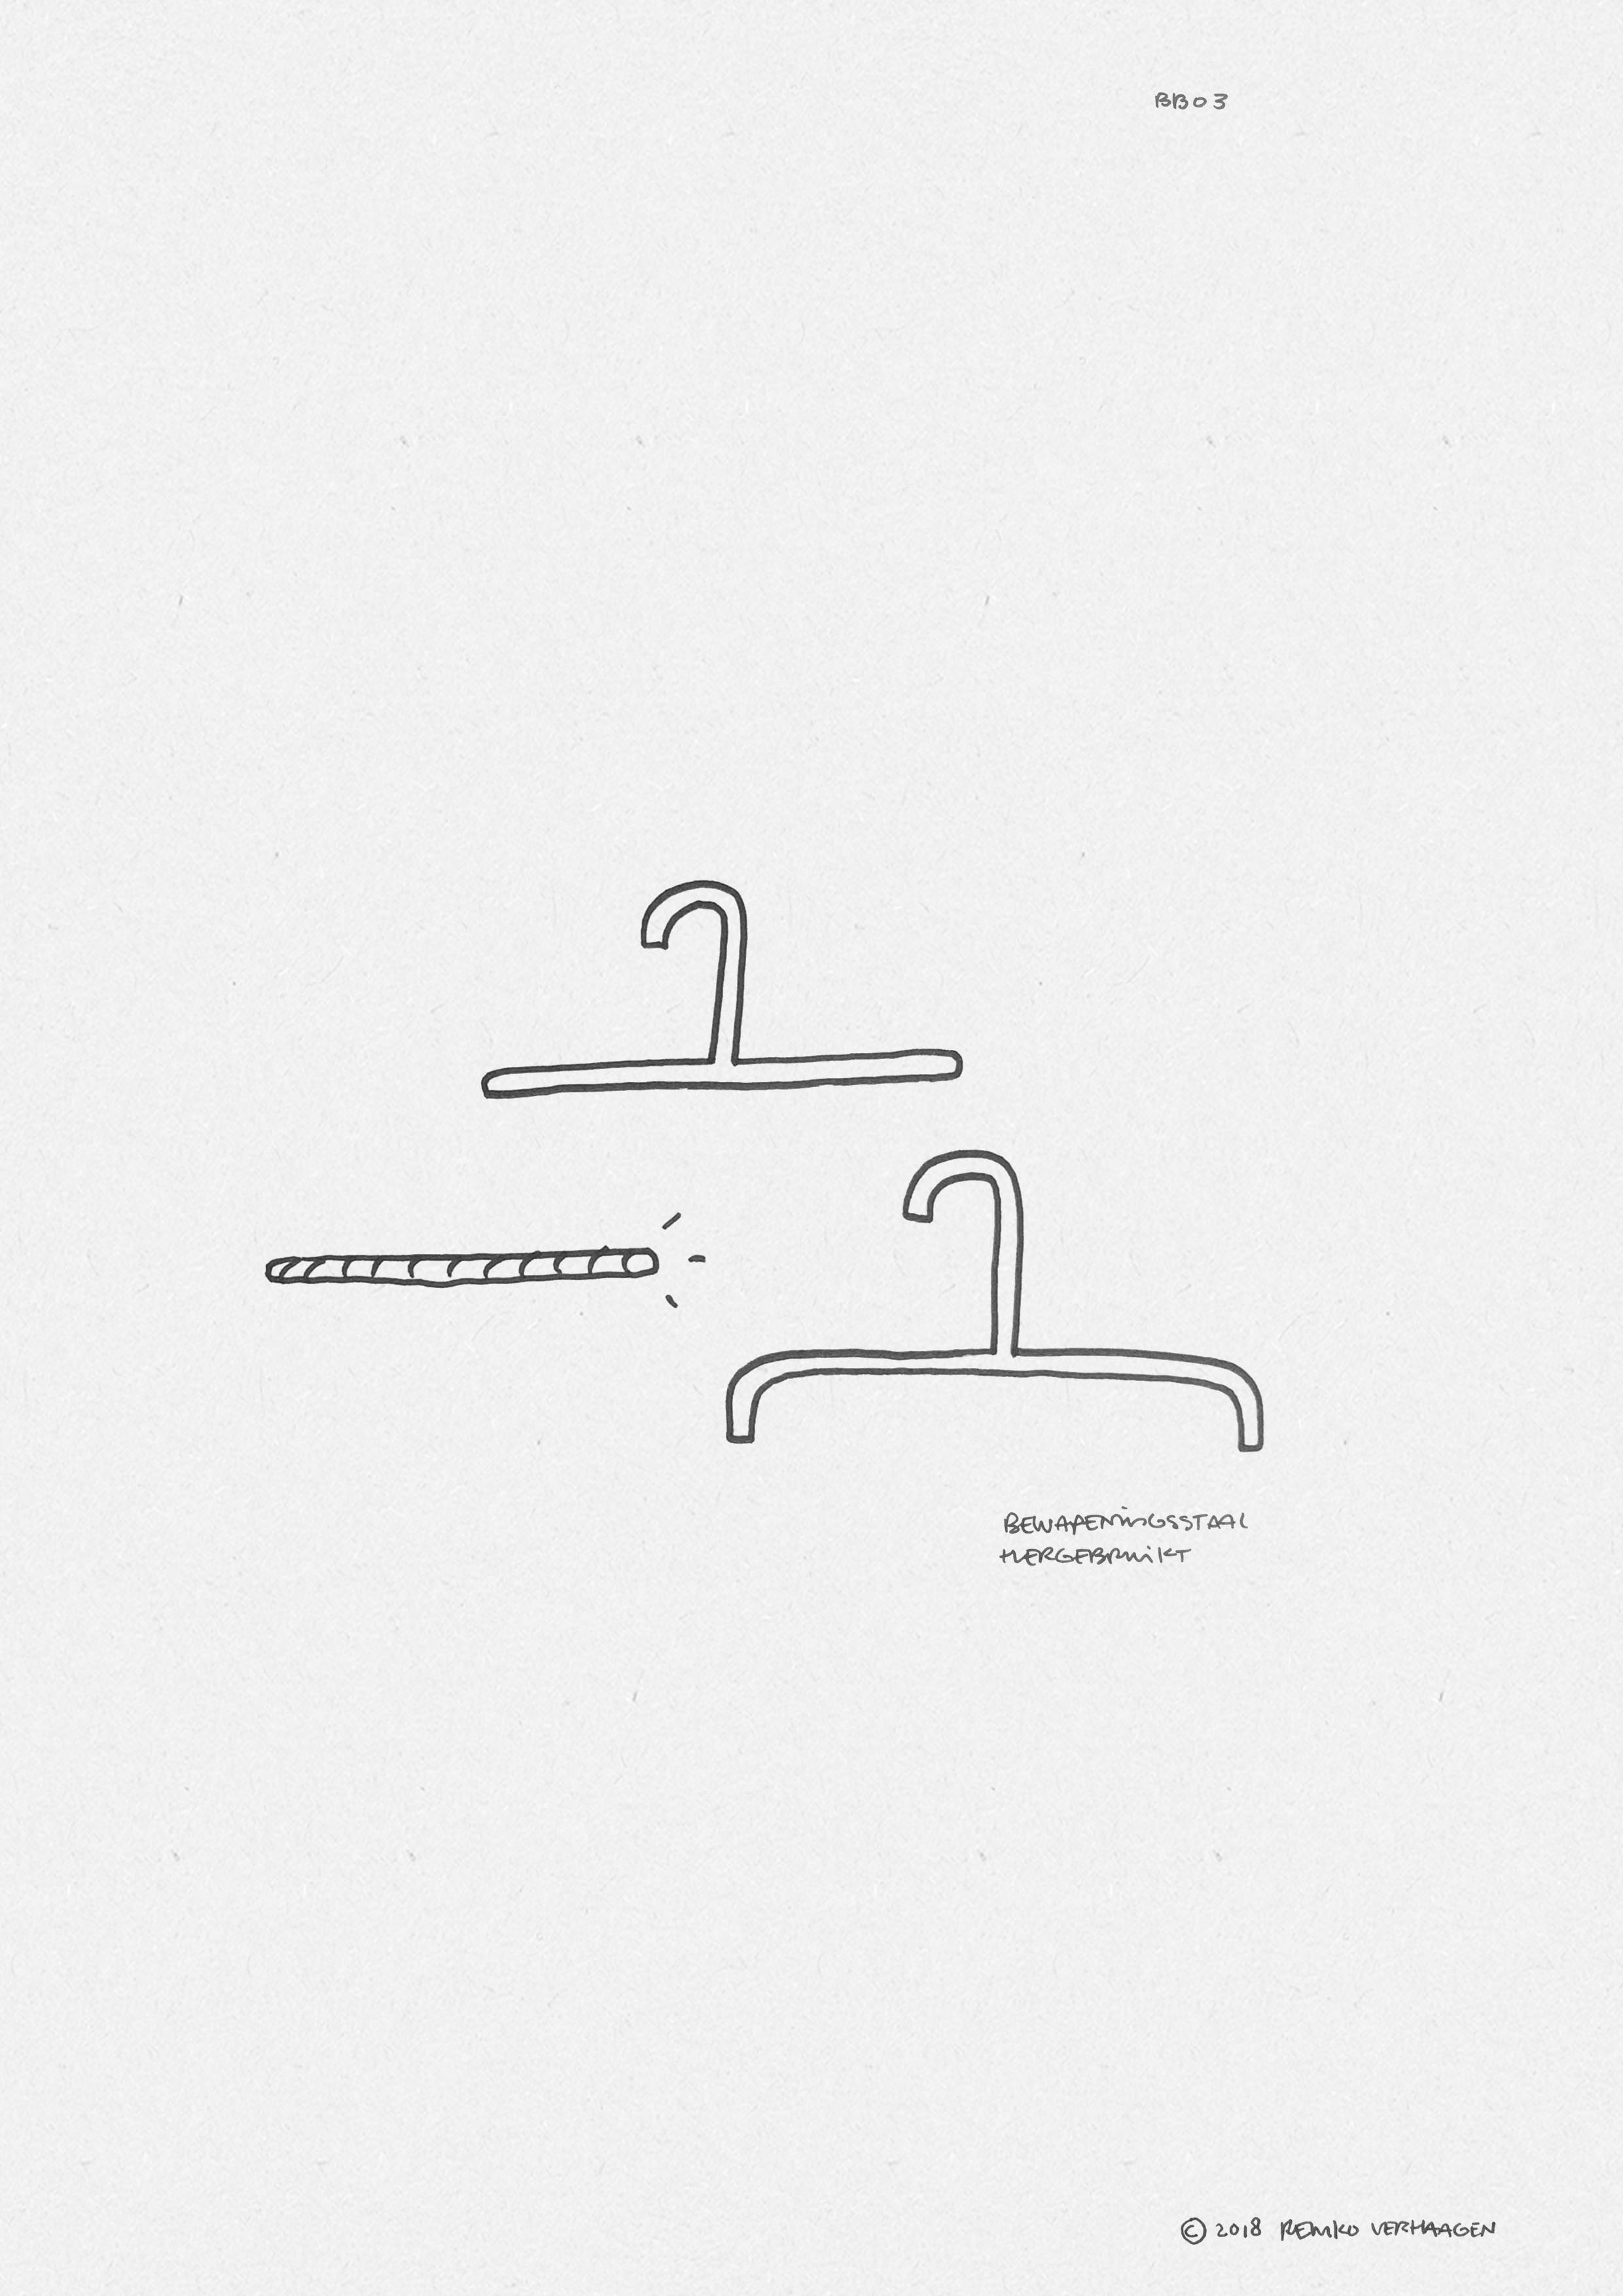 BB03 COAT HANGER  / Iconic coat hanger made from construction steel reclaimed from demolished bunkers.